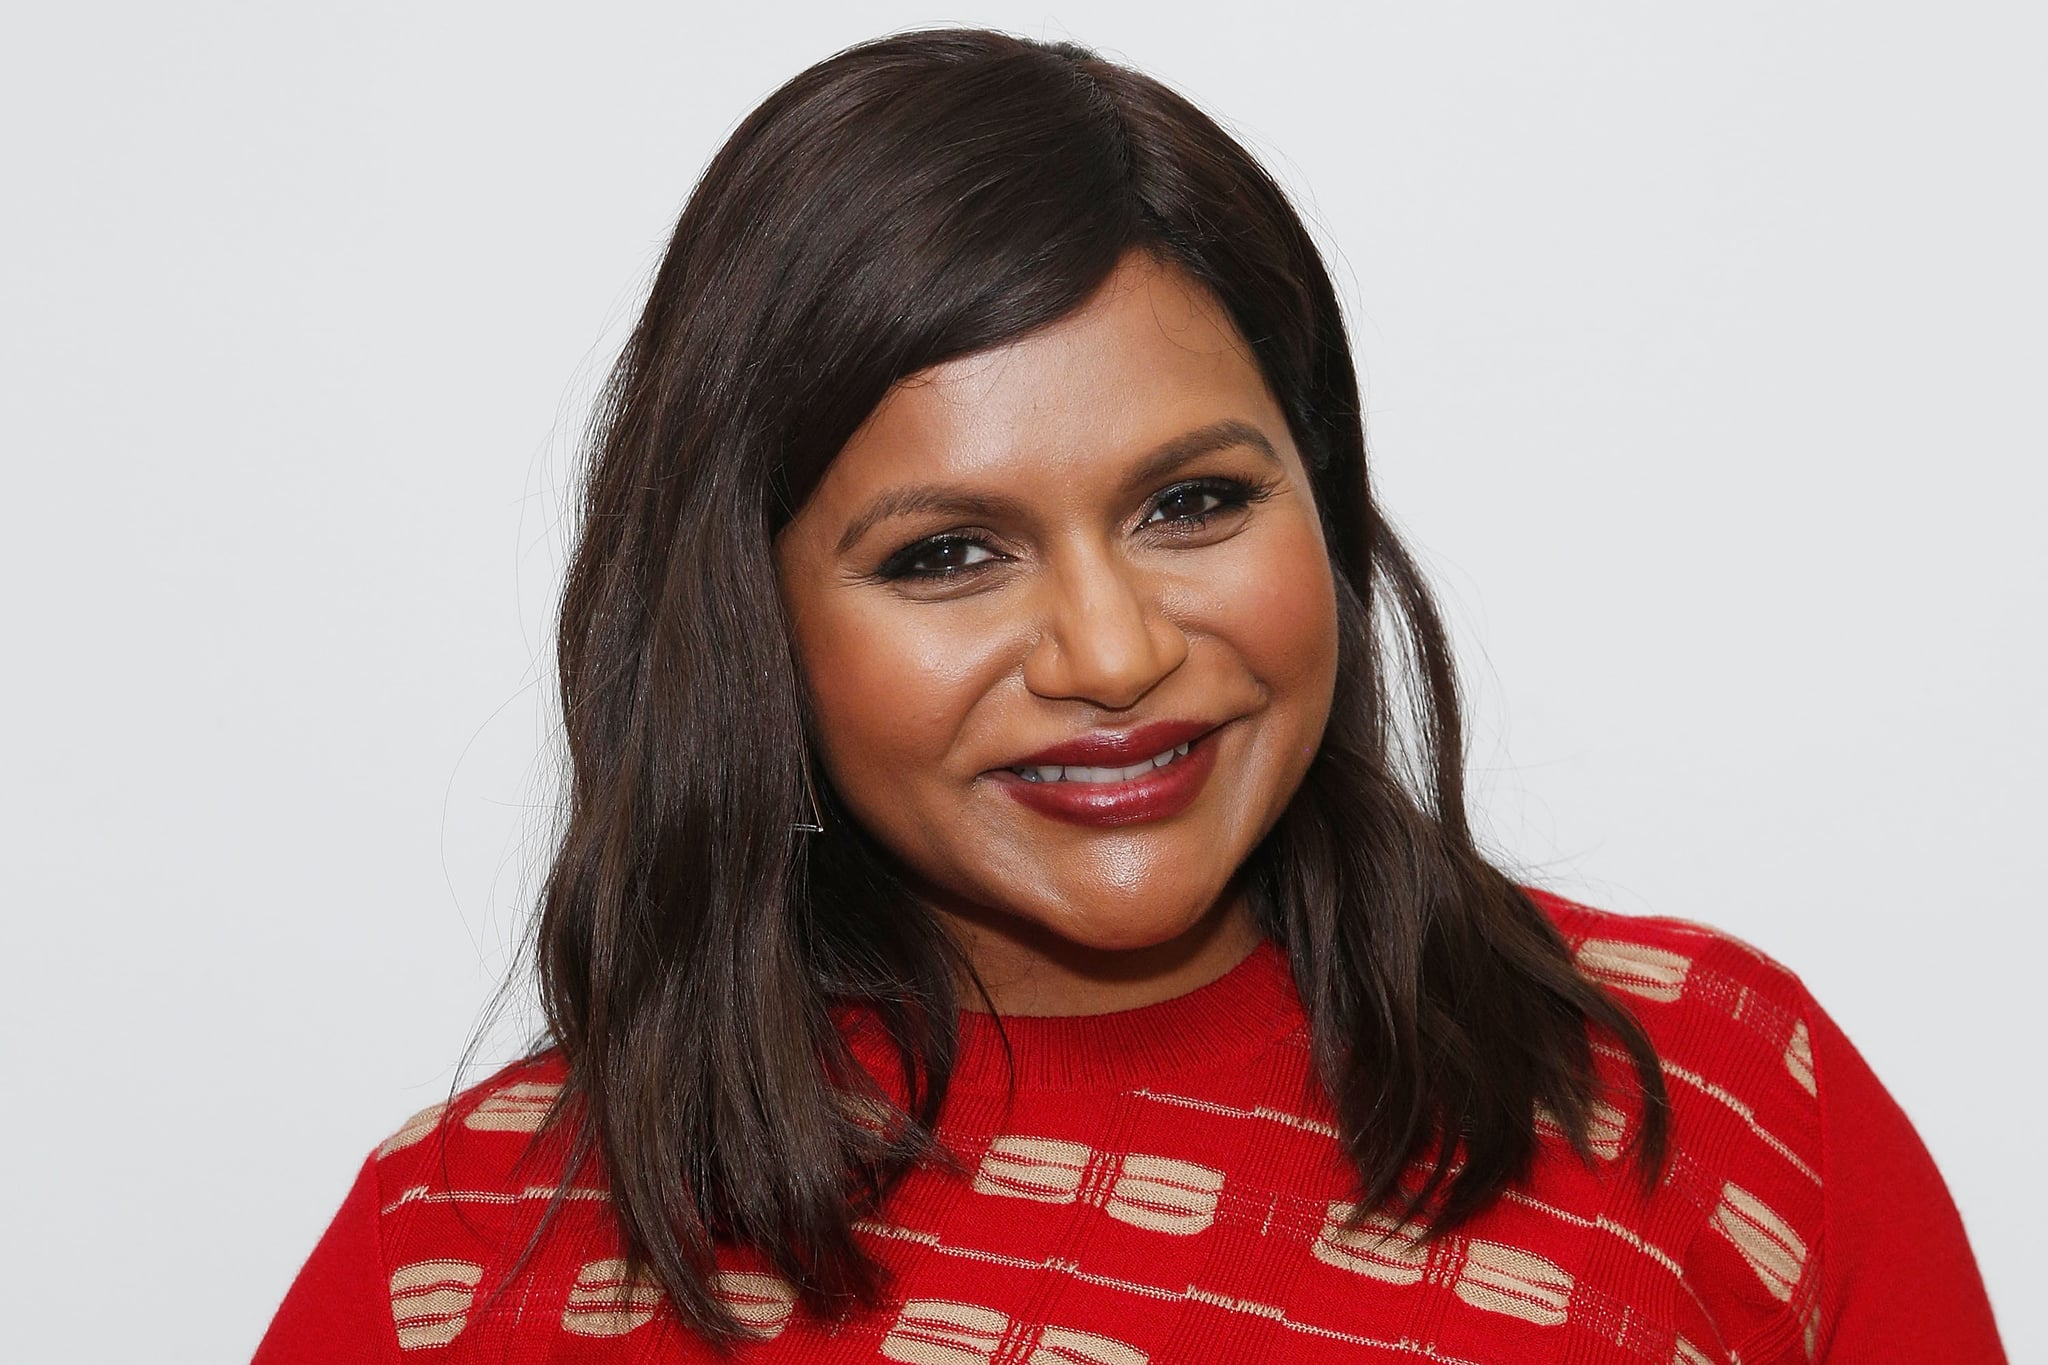 NEW YORK, NY - JUNE 05:  Actor, writer and producer Mindy Kaling attends The Academy of Motion Picture Arts and Sciences official Academy screening of